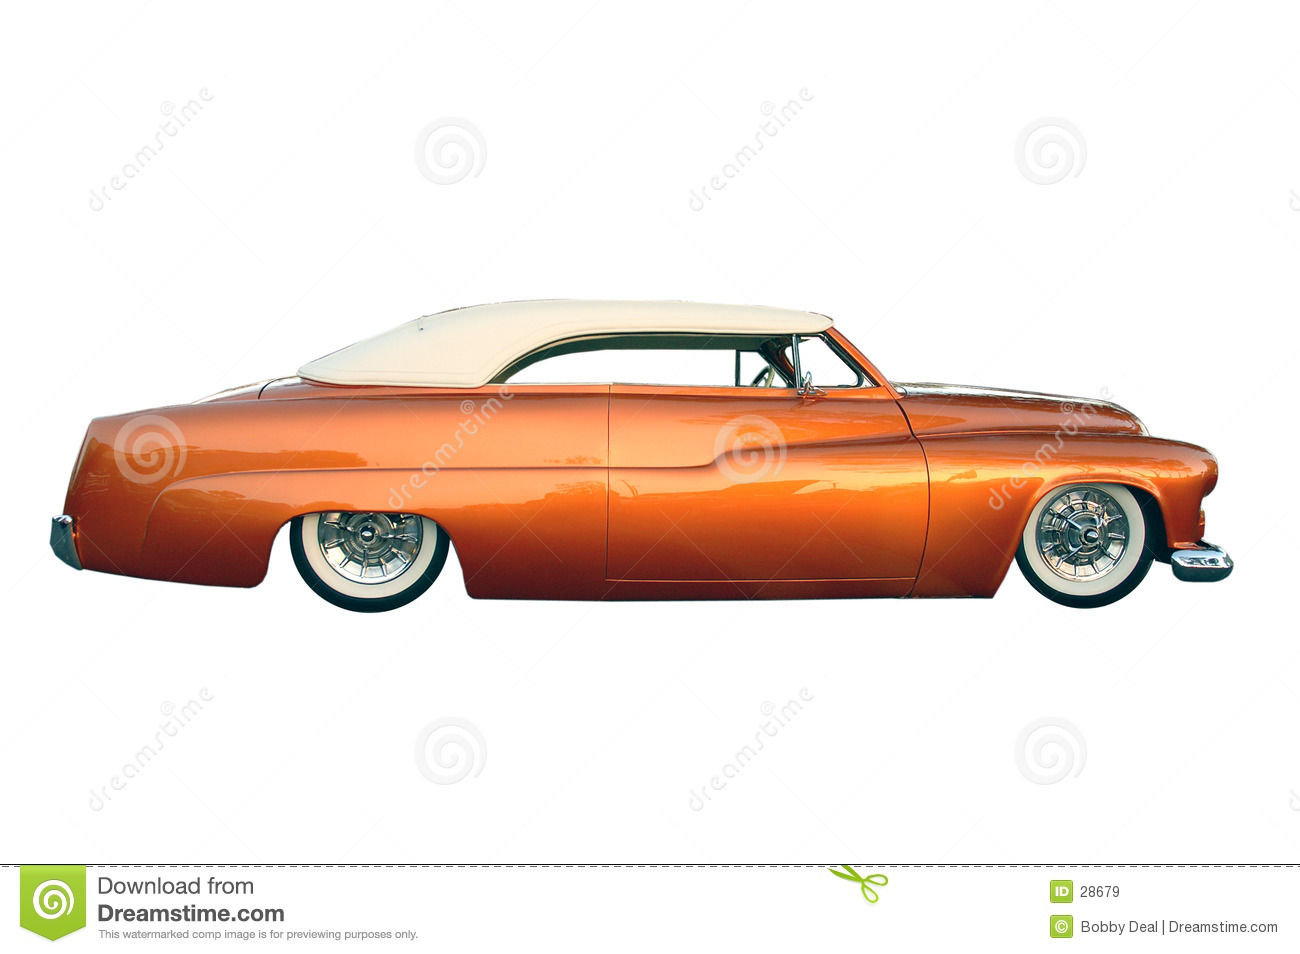 Download Lowrider stock image. Image of coupe, roadster, lowrider - 28679